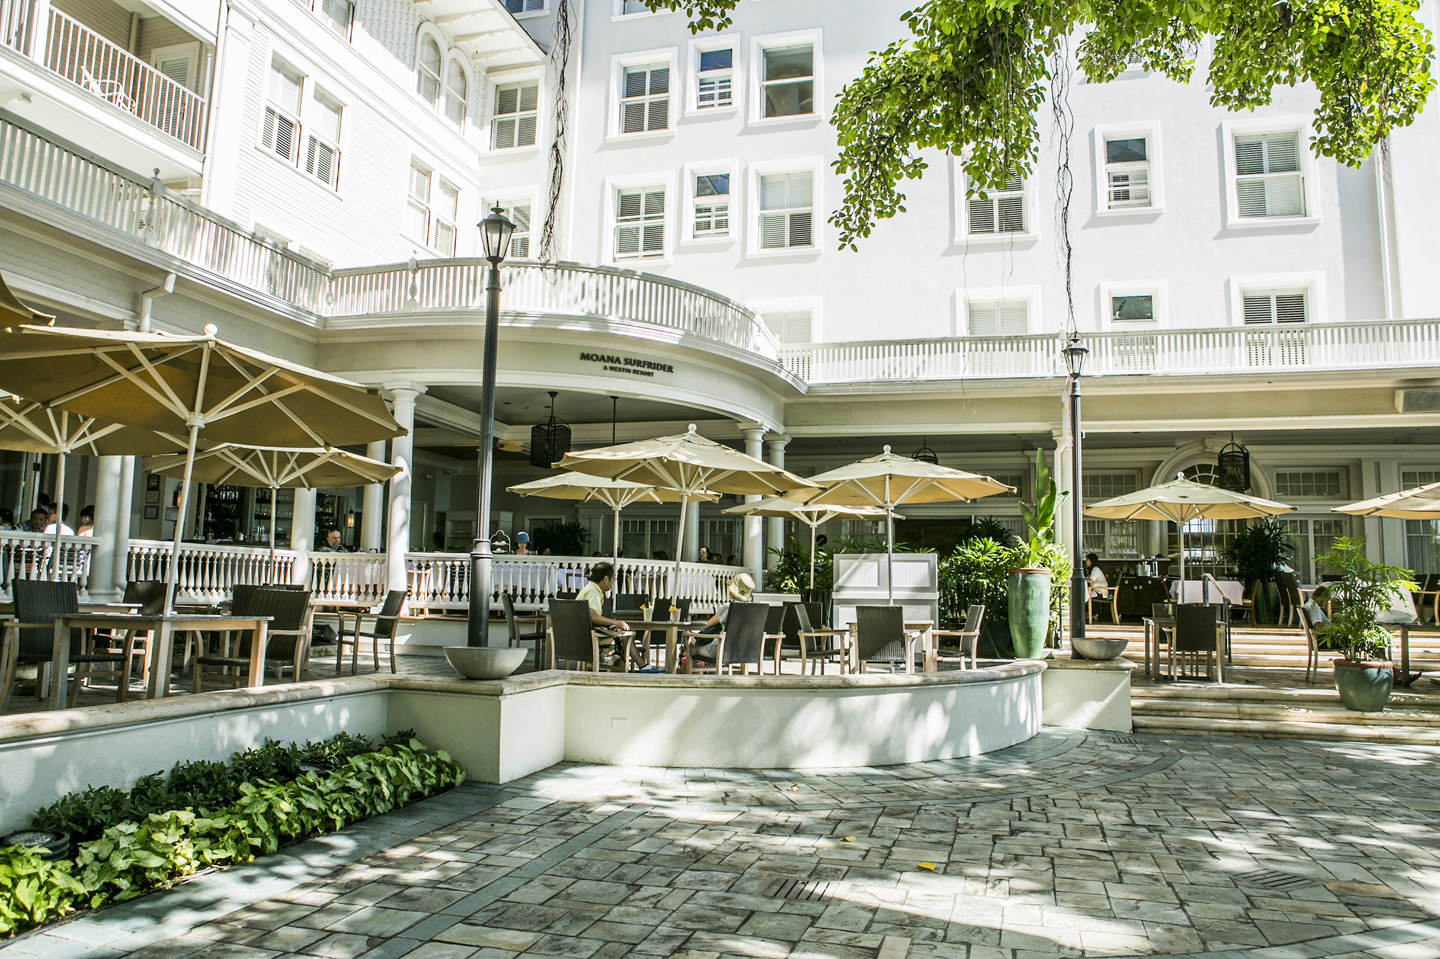 Moana Surfrider Westin Beach House